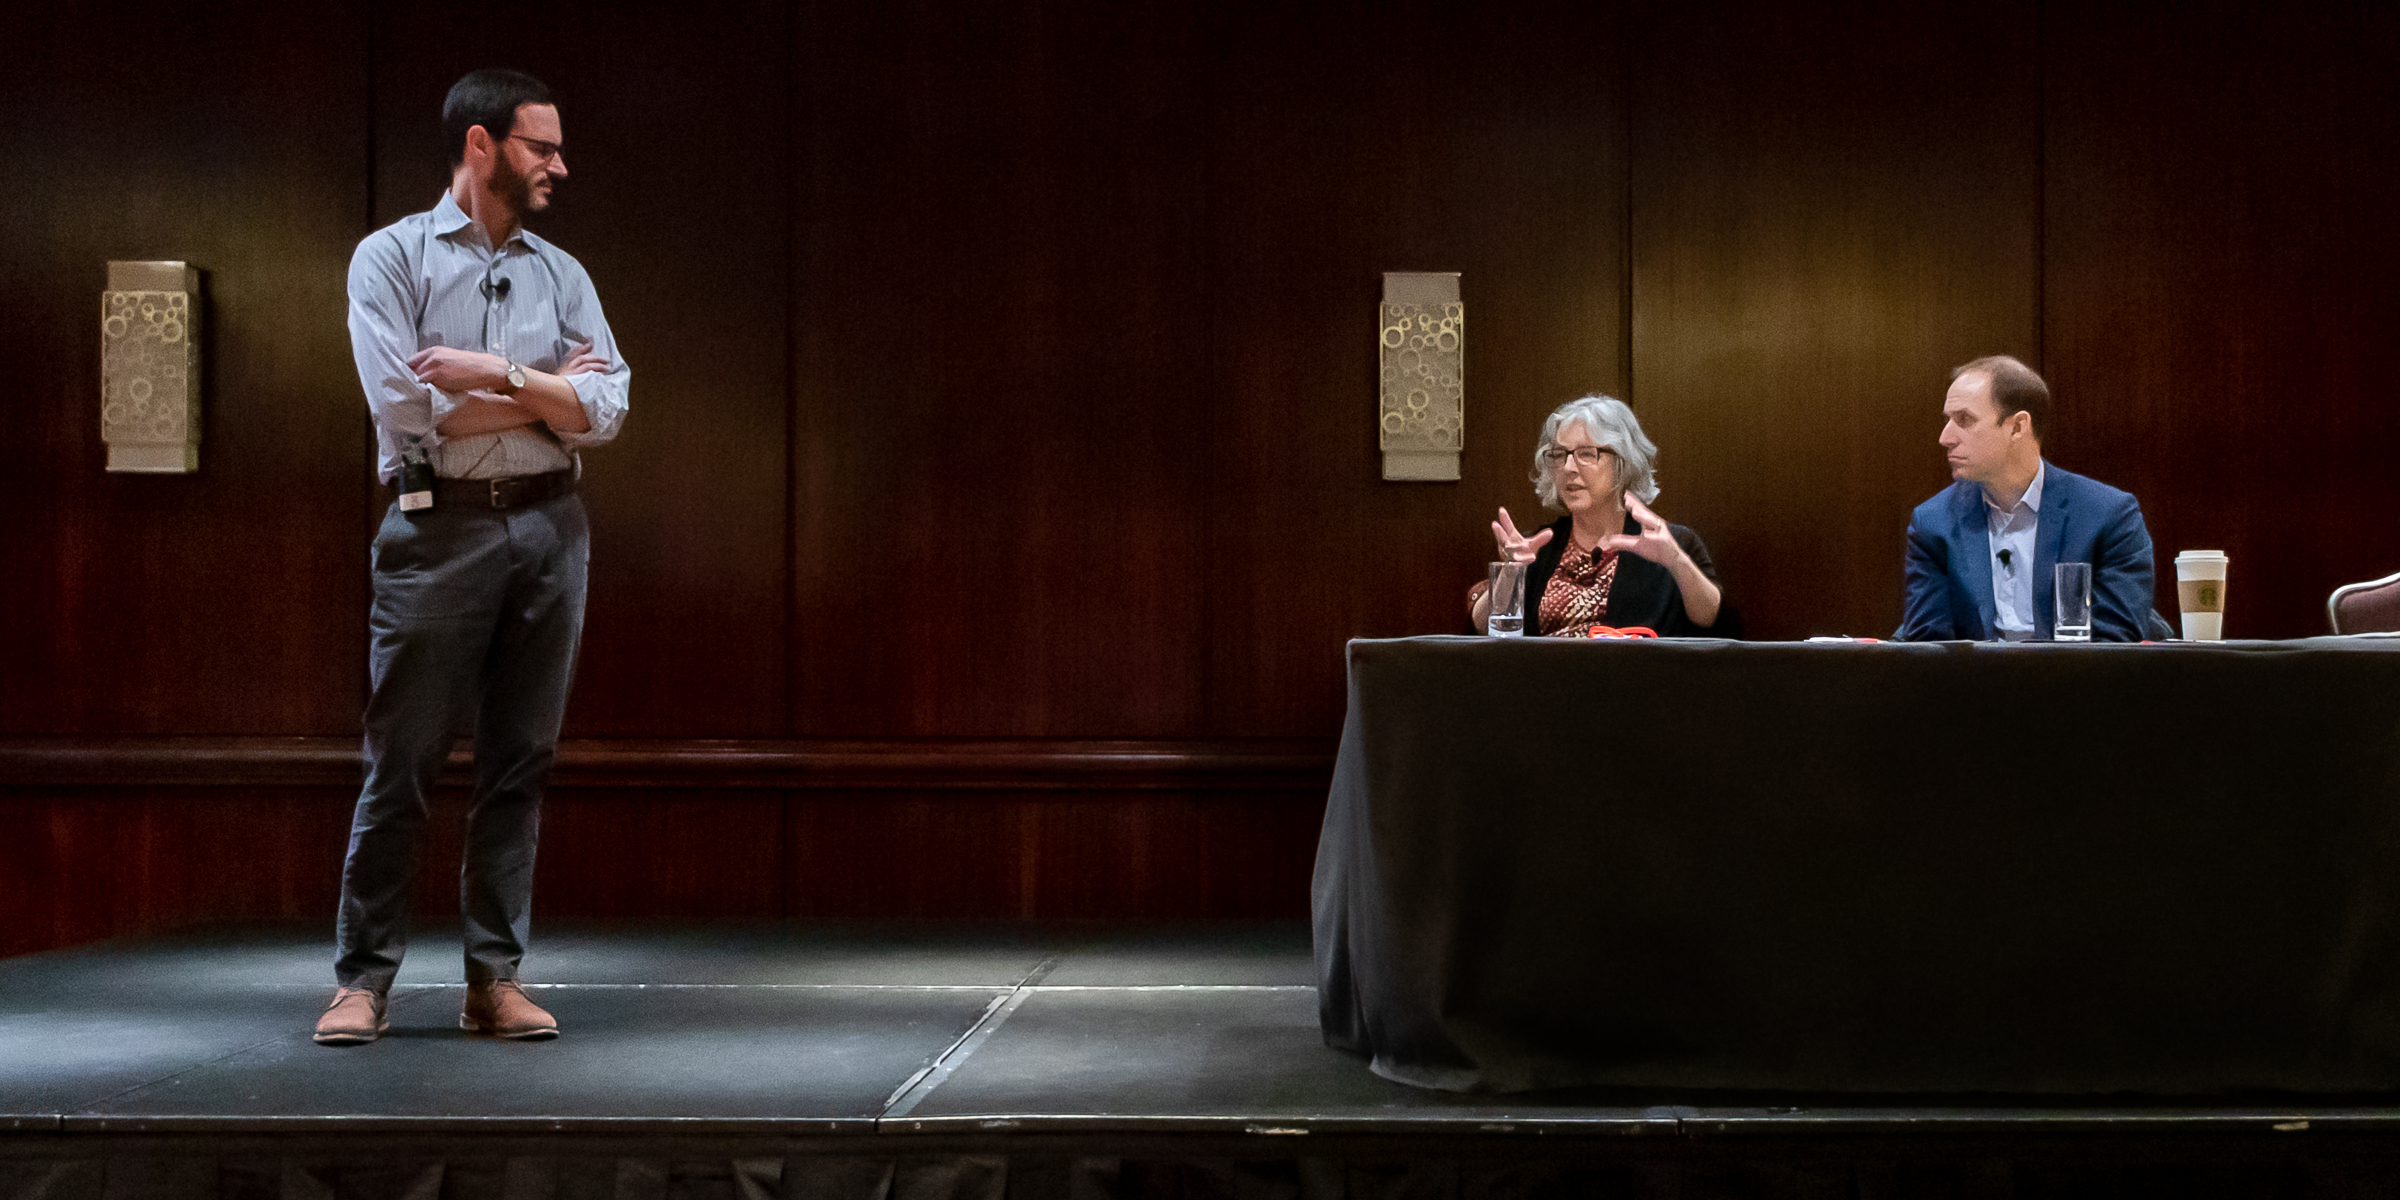 Evan Weissman stands while Elisabeth Barnett and Alexander Mayer sit on stage during a presentation